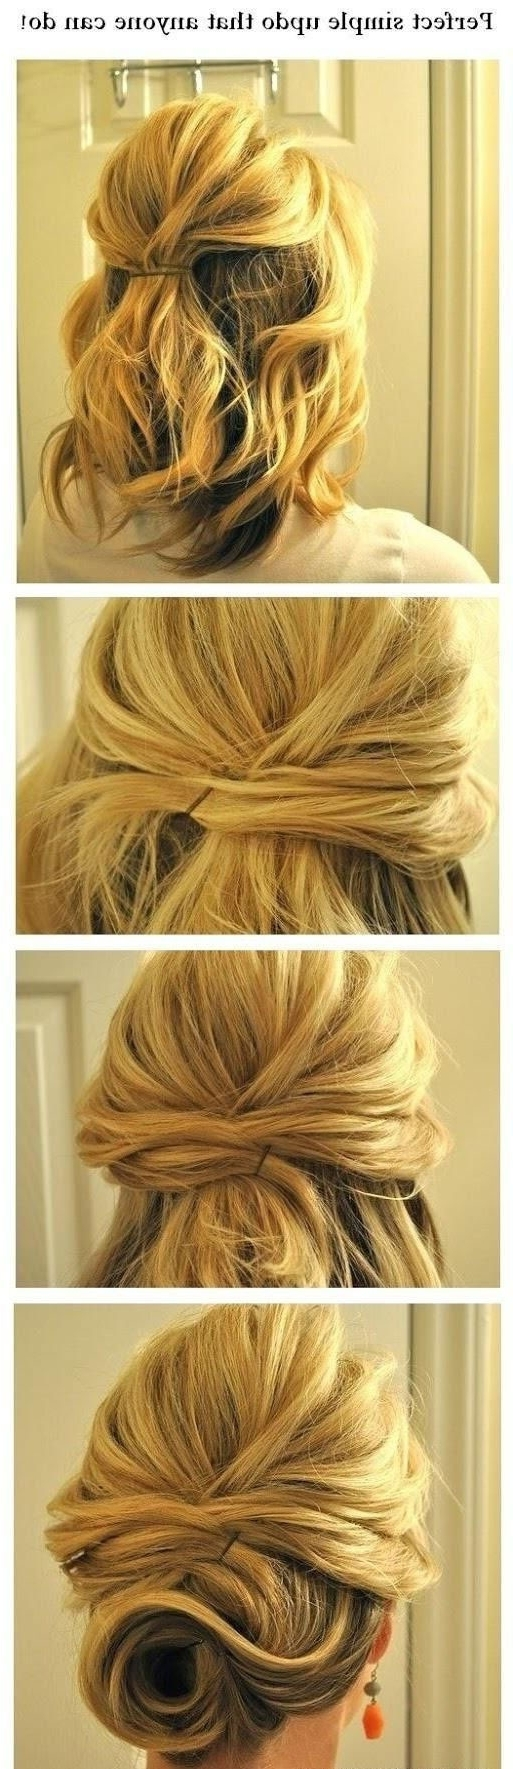 15 Cute And Easy Hairstyle Tutorials For Medium Length Hair – Gurl Intended For Easy Updos For Thick Medium Length Hair (View 1 of 15)